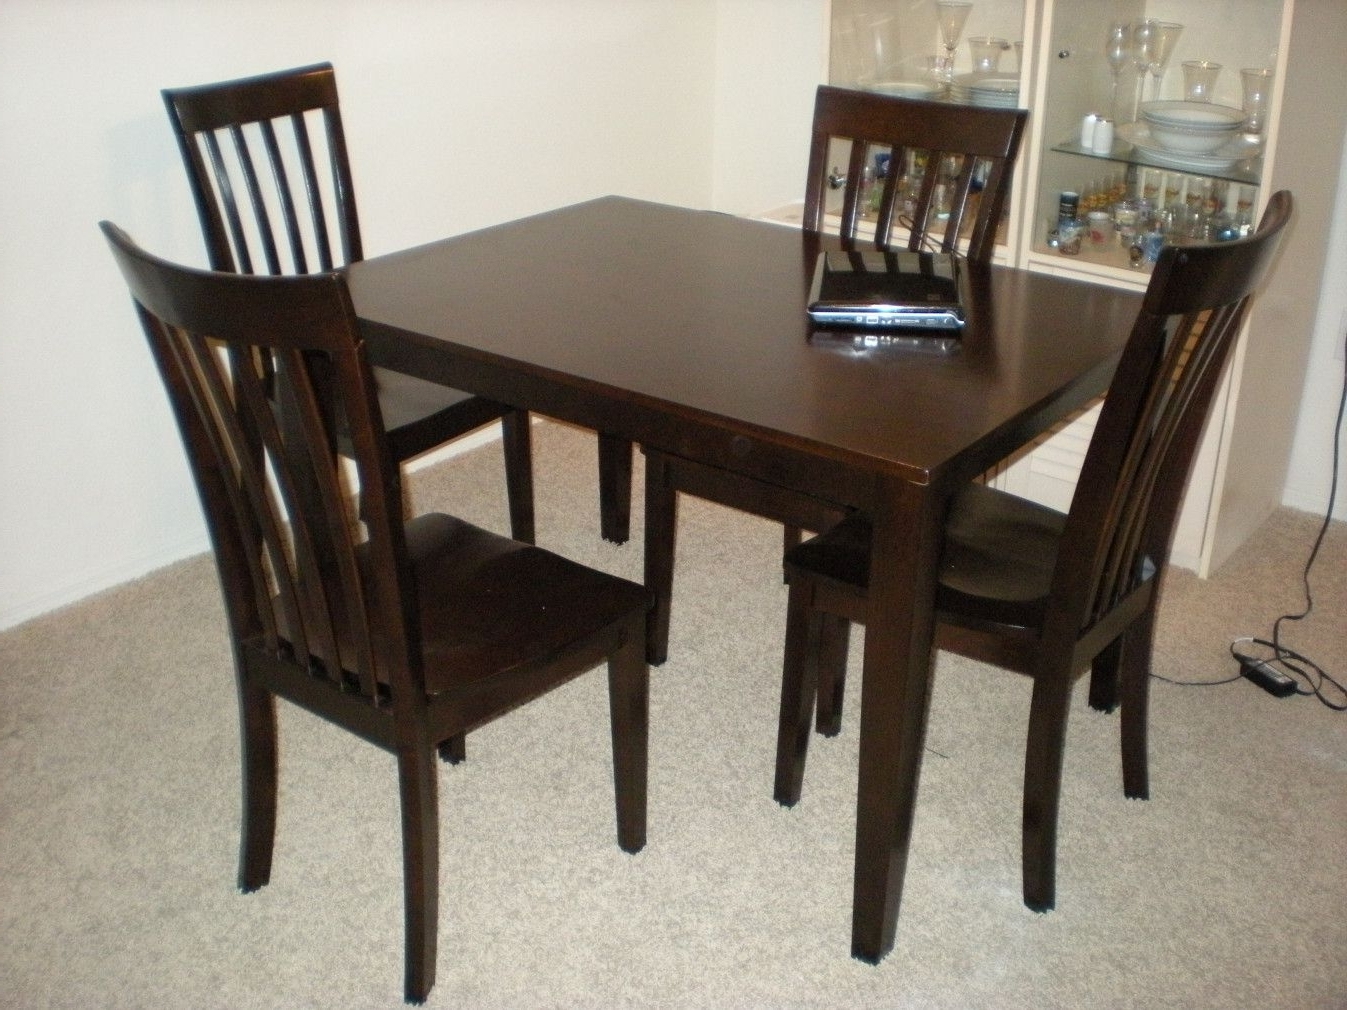 Newest Second Hand Oak Dining Chairs With Regard To 55+ Second Hand Oak Dining Table And Chairs – Vintage Modern (View 16 of 25)